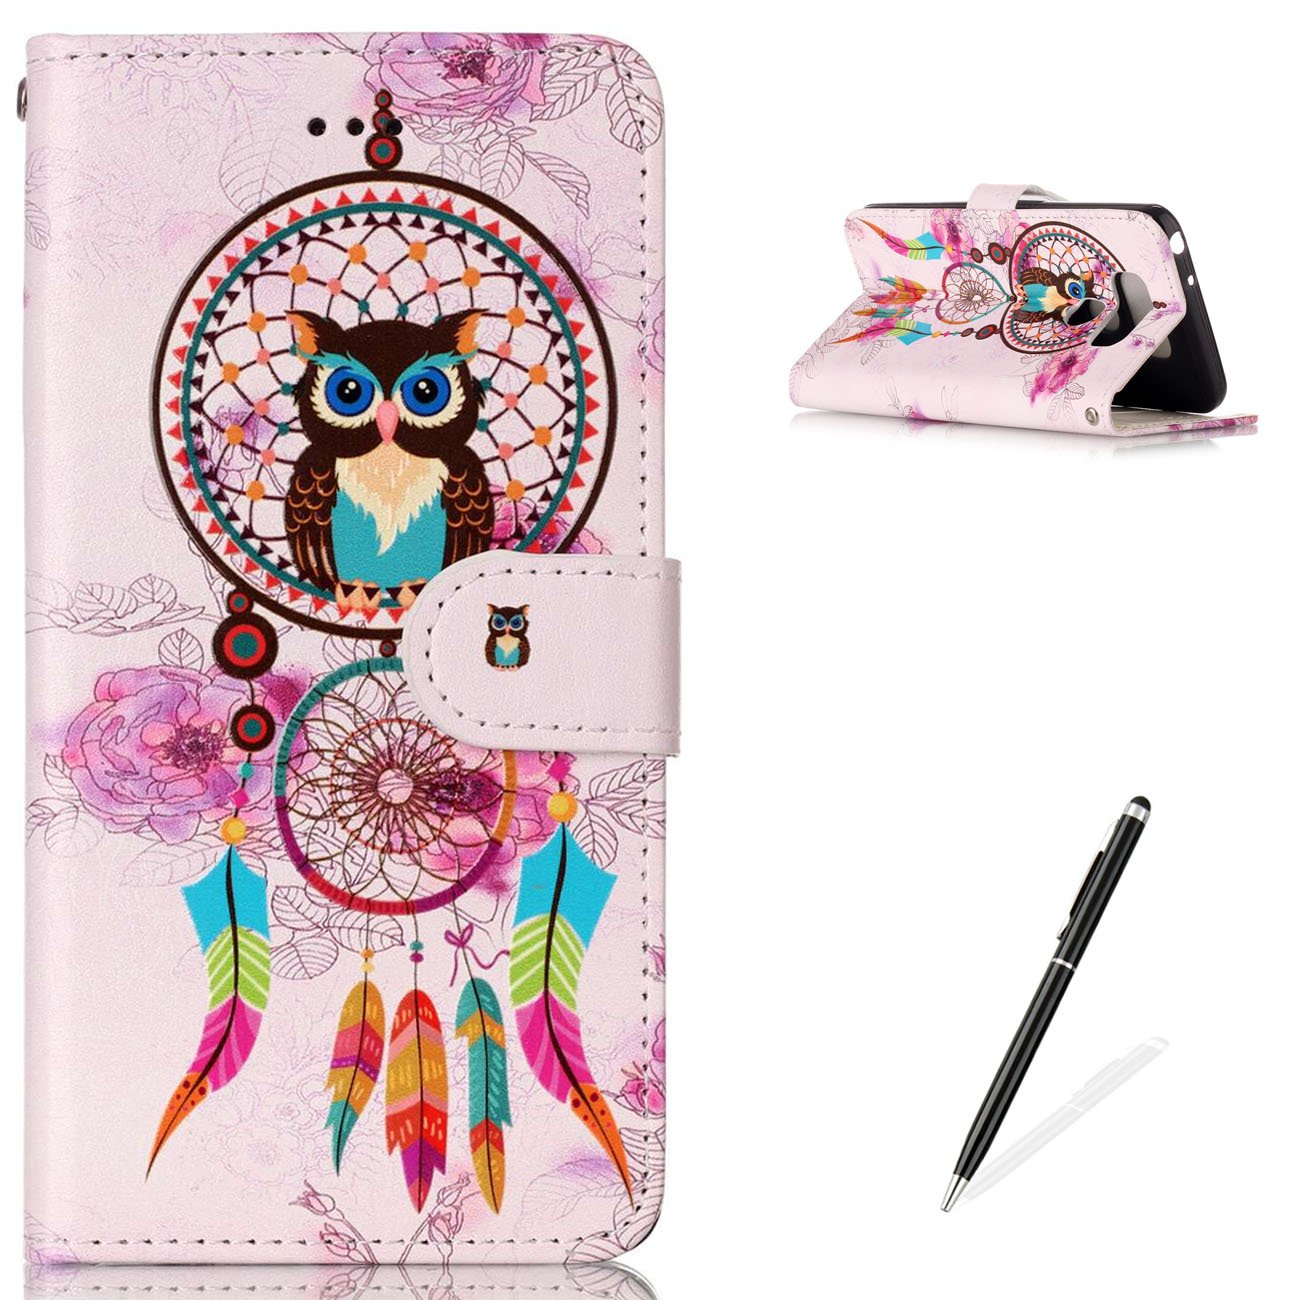 LG G6 Premium PU Leather Stand Wallet Case,MAGQI Flip Book Style Shell Cute Animal Cartoon Painting with [Free 2 in 1 Stylus] Full Body Protective Cover - Elephant Feeltech YF-YHPT-LG6-06